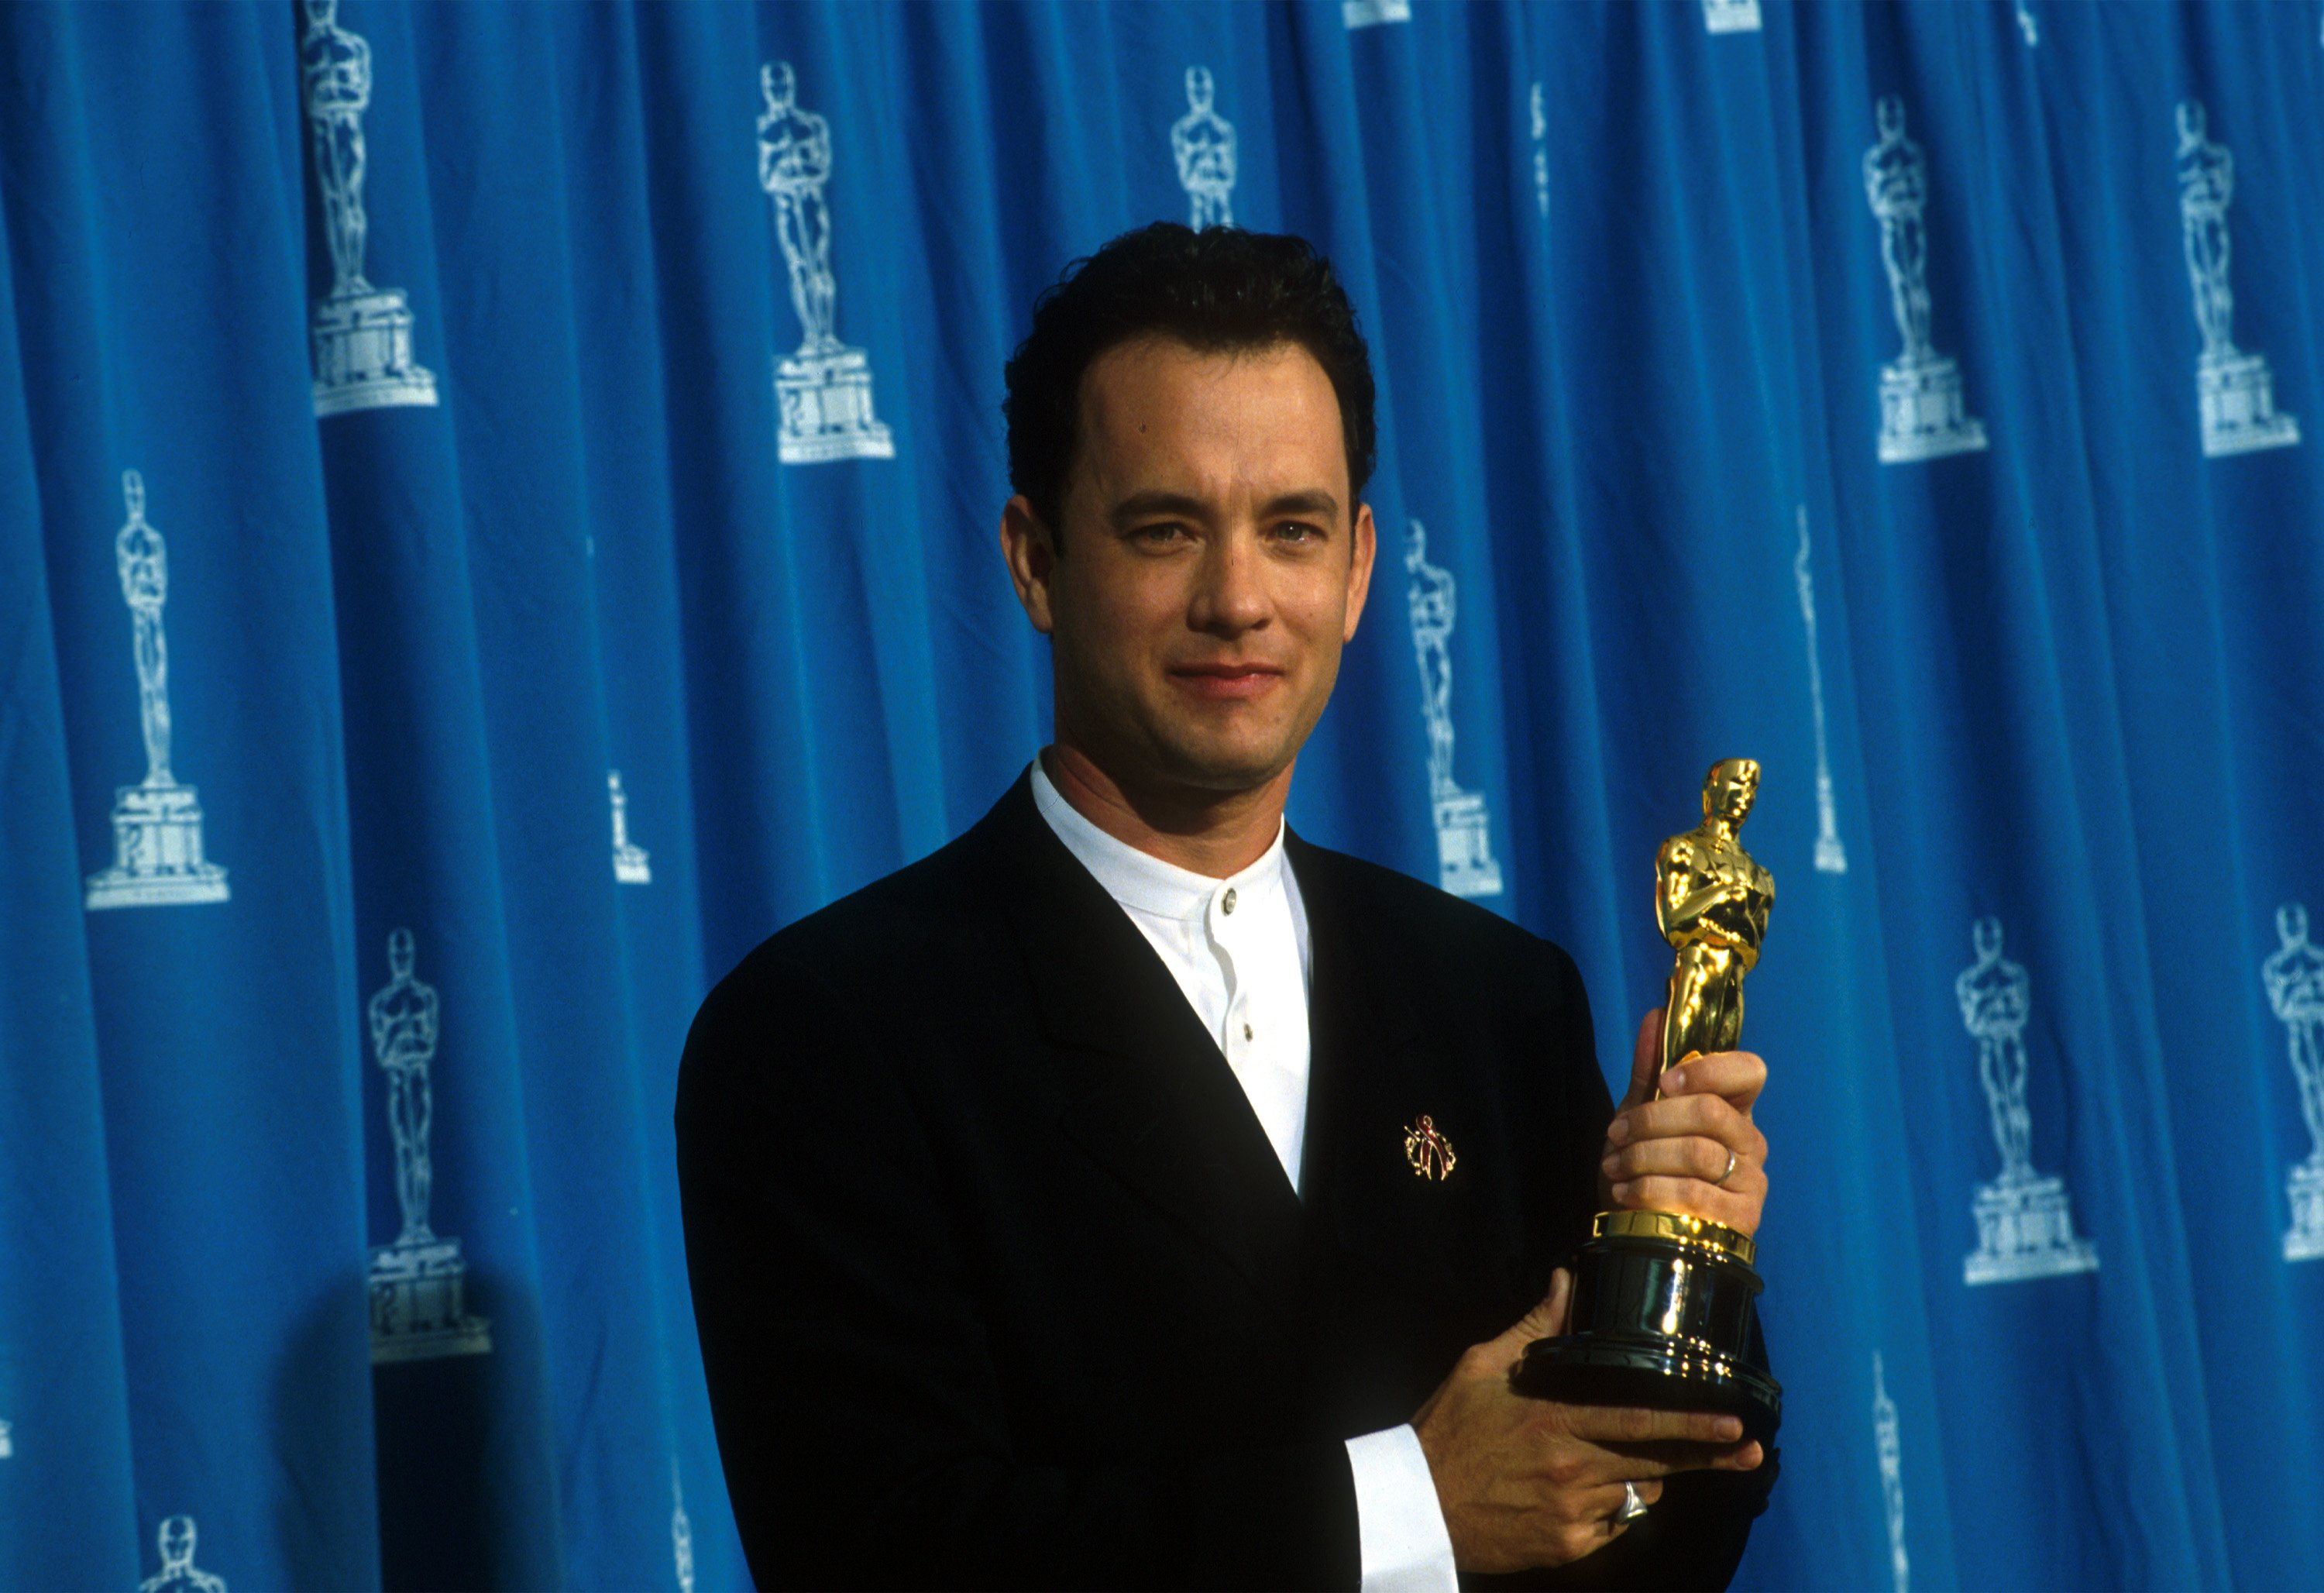 Actor Tom Hanks receives his Oscar at the Academy Awards in Los Angeles, CA., March 27, 1995. | Source: Getty Images